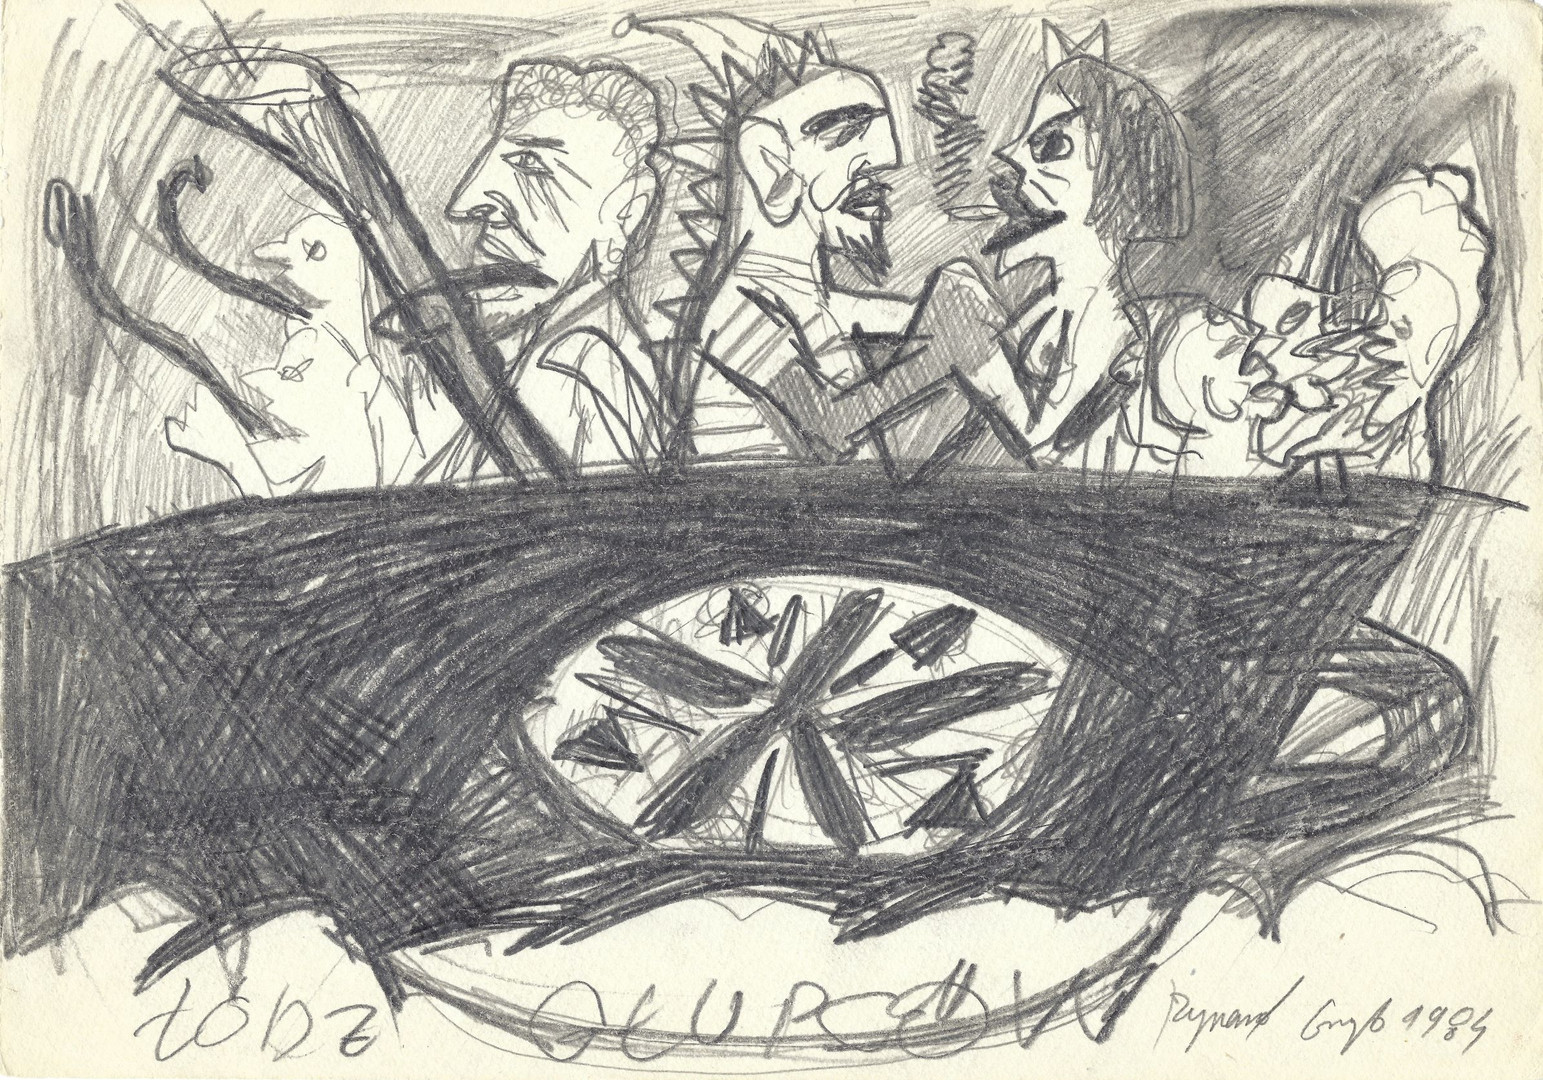 """Ship of fools"", 1984, pencil on paper, 21 x 29,7 cm"